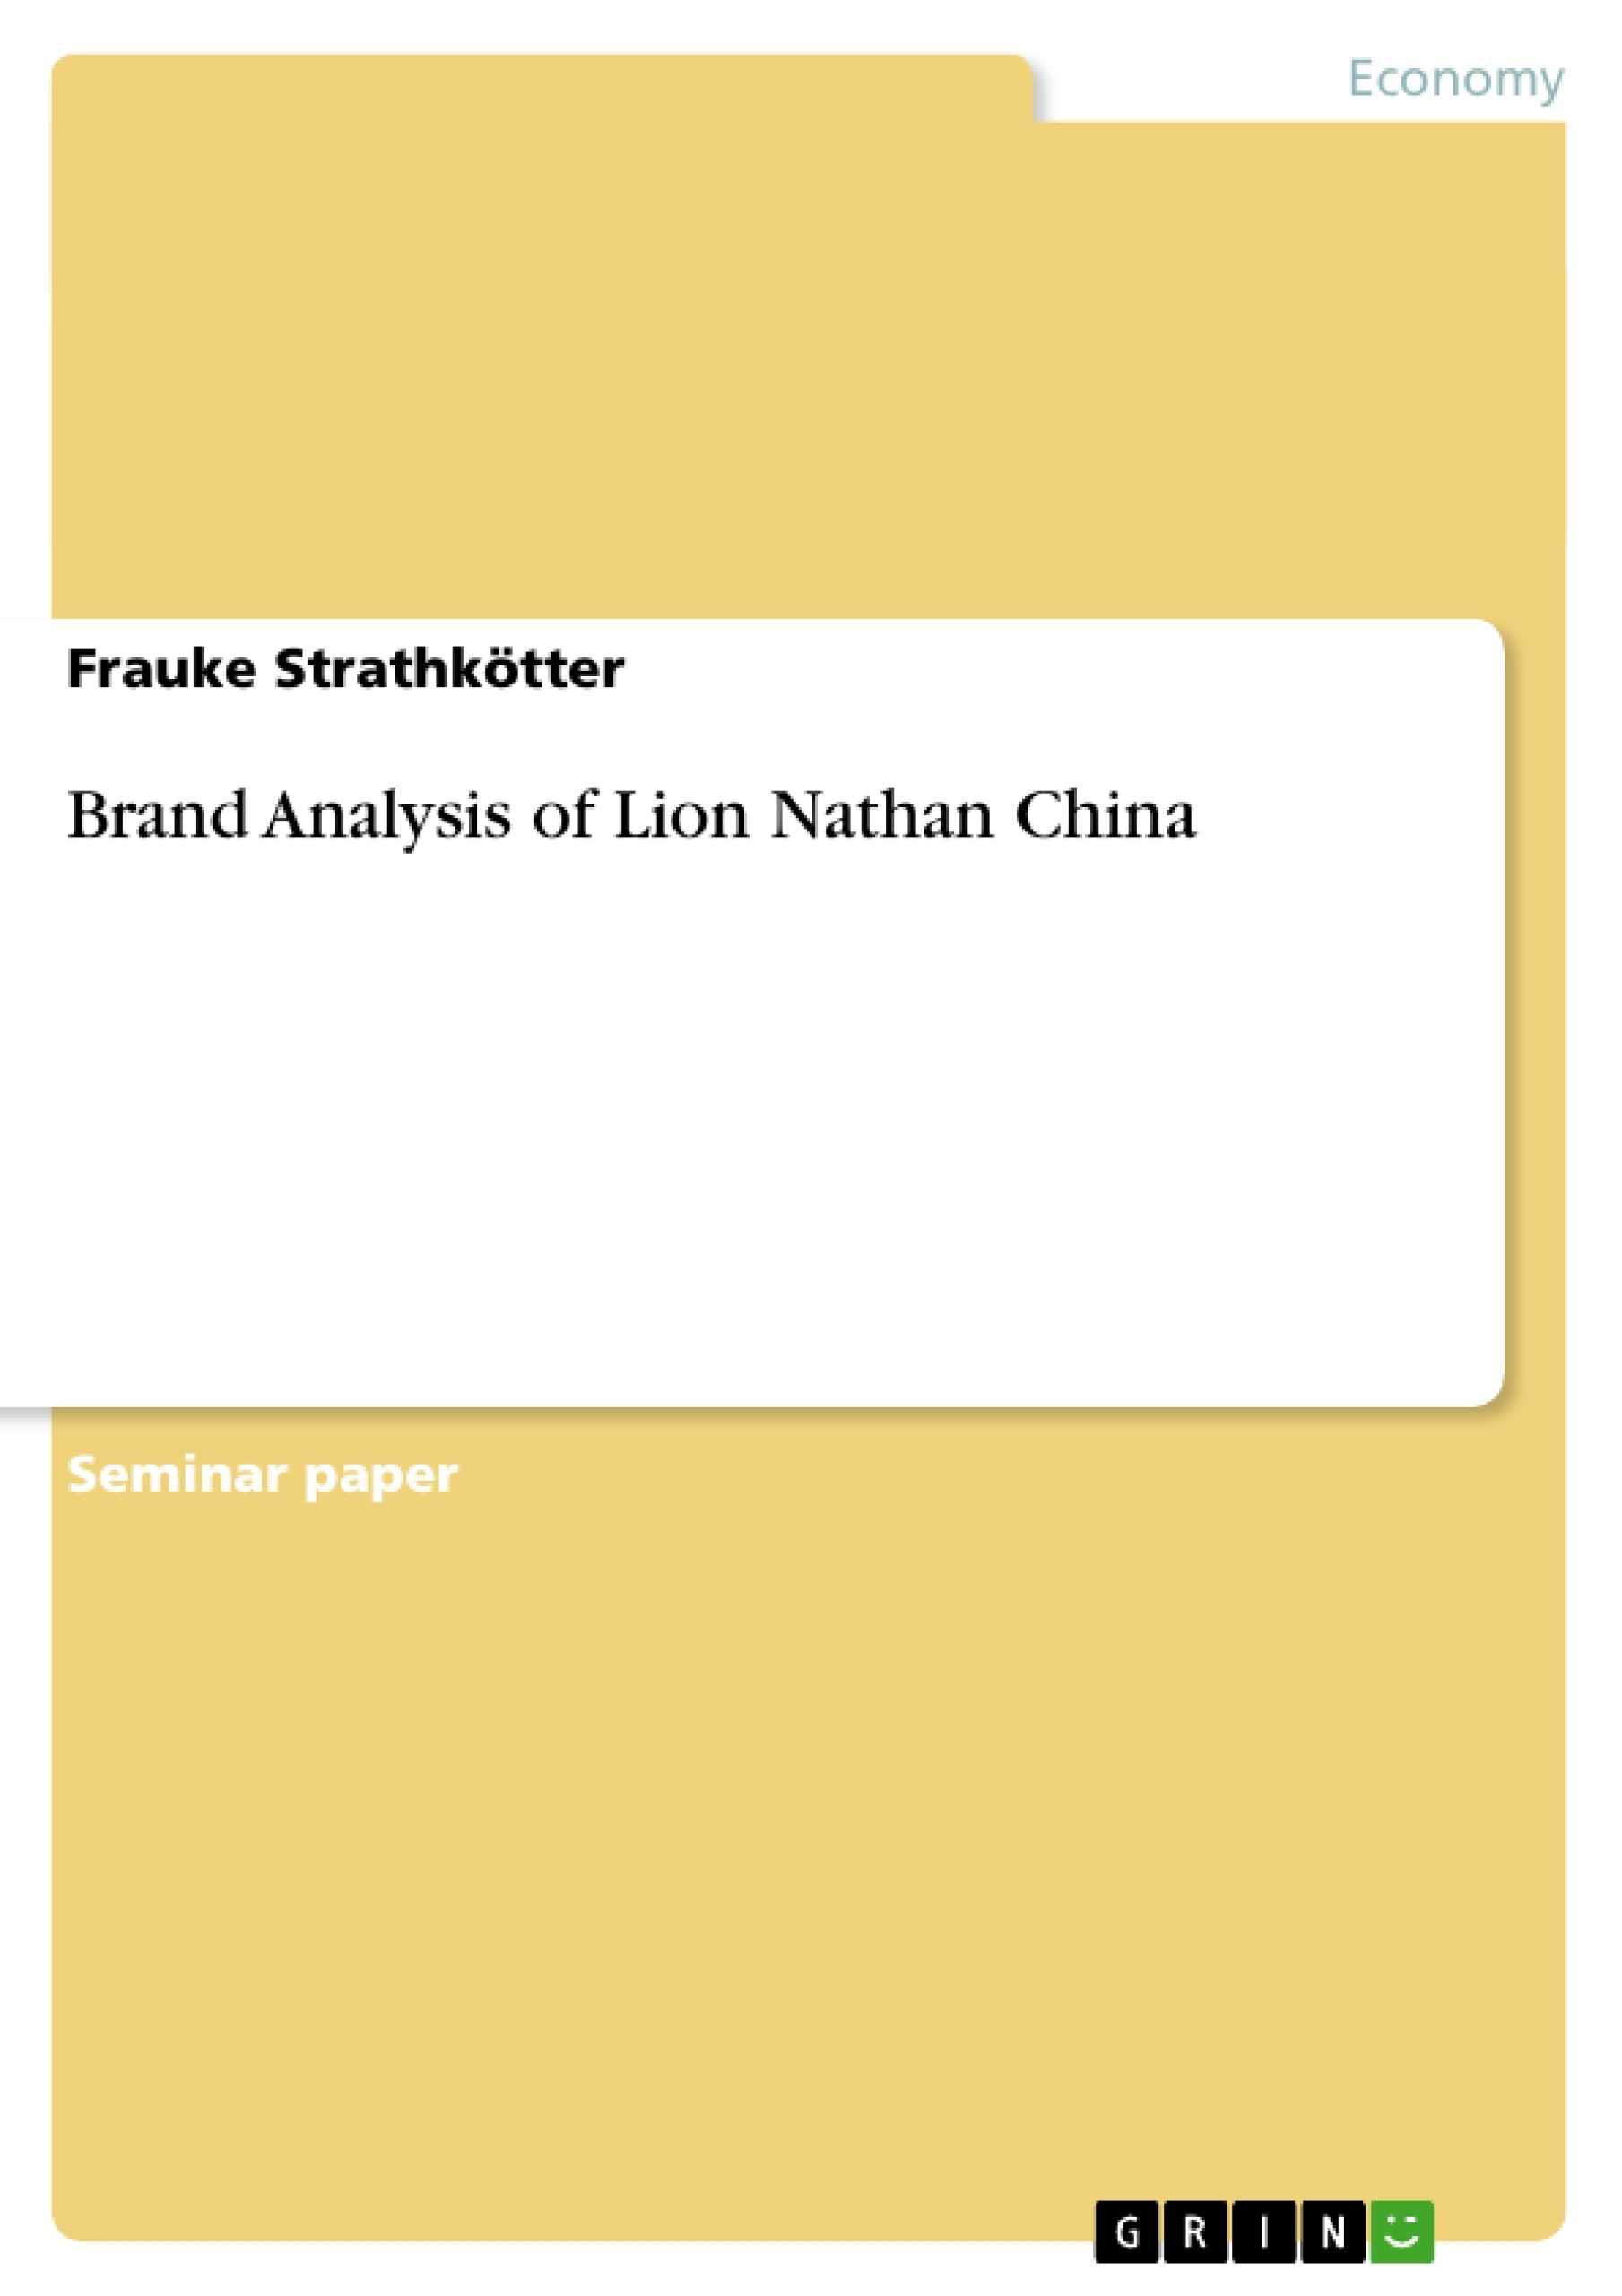 Title: Brand Analysis of Lion Nathan China